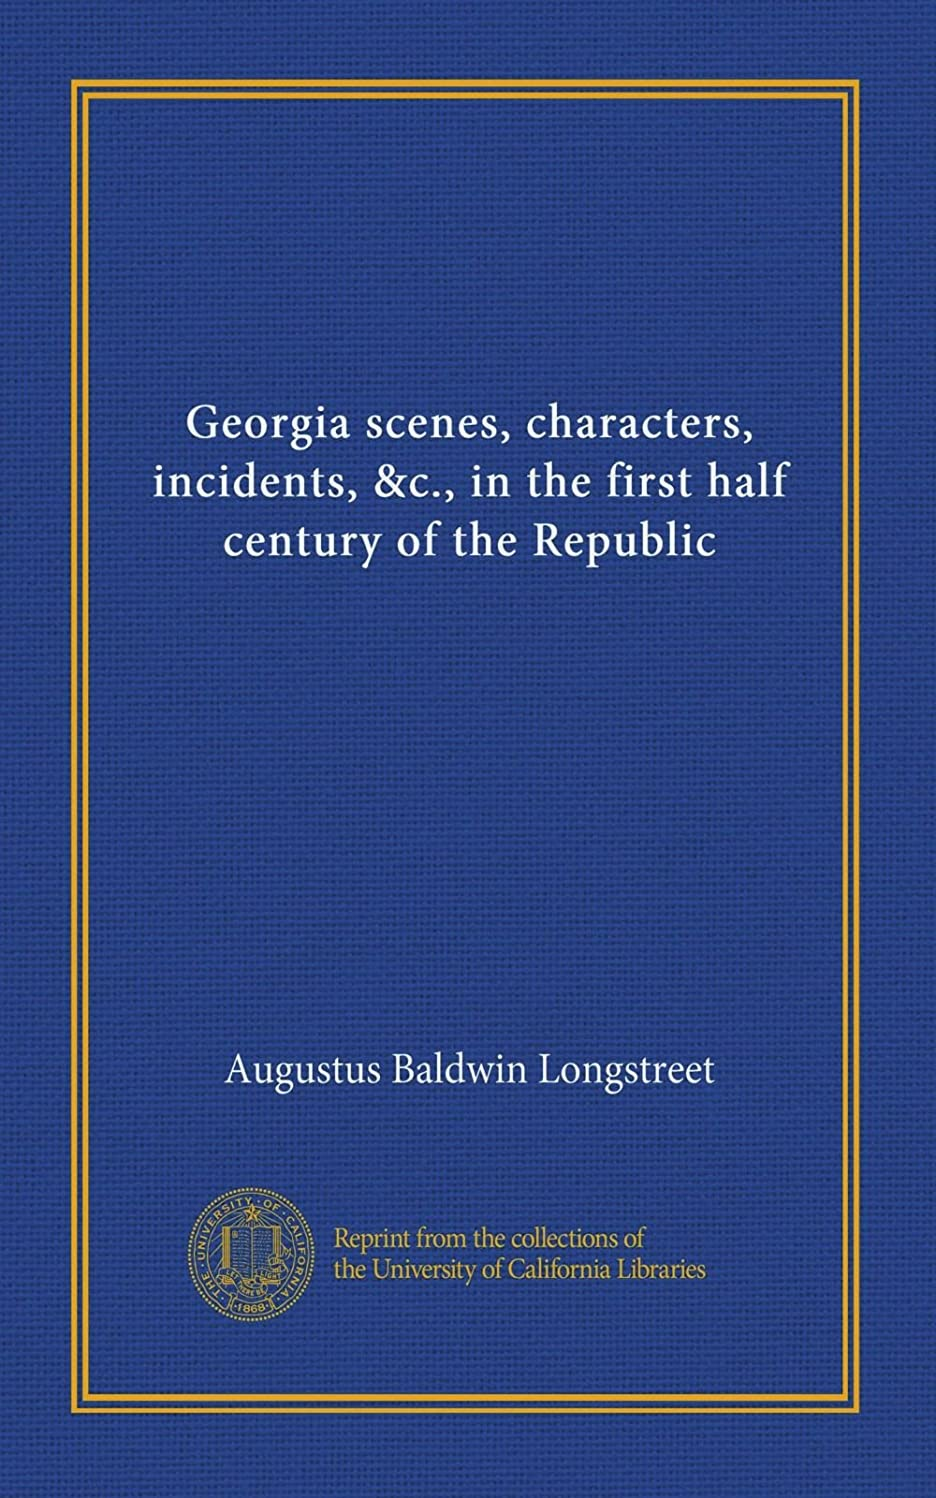 包帯郵便局スカーフGeorgia scenes, characters, incidents, &c., in the first half century of the Republic